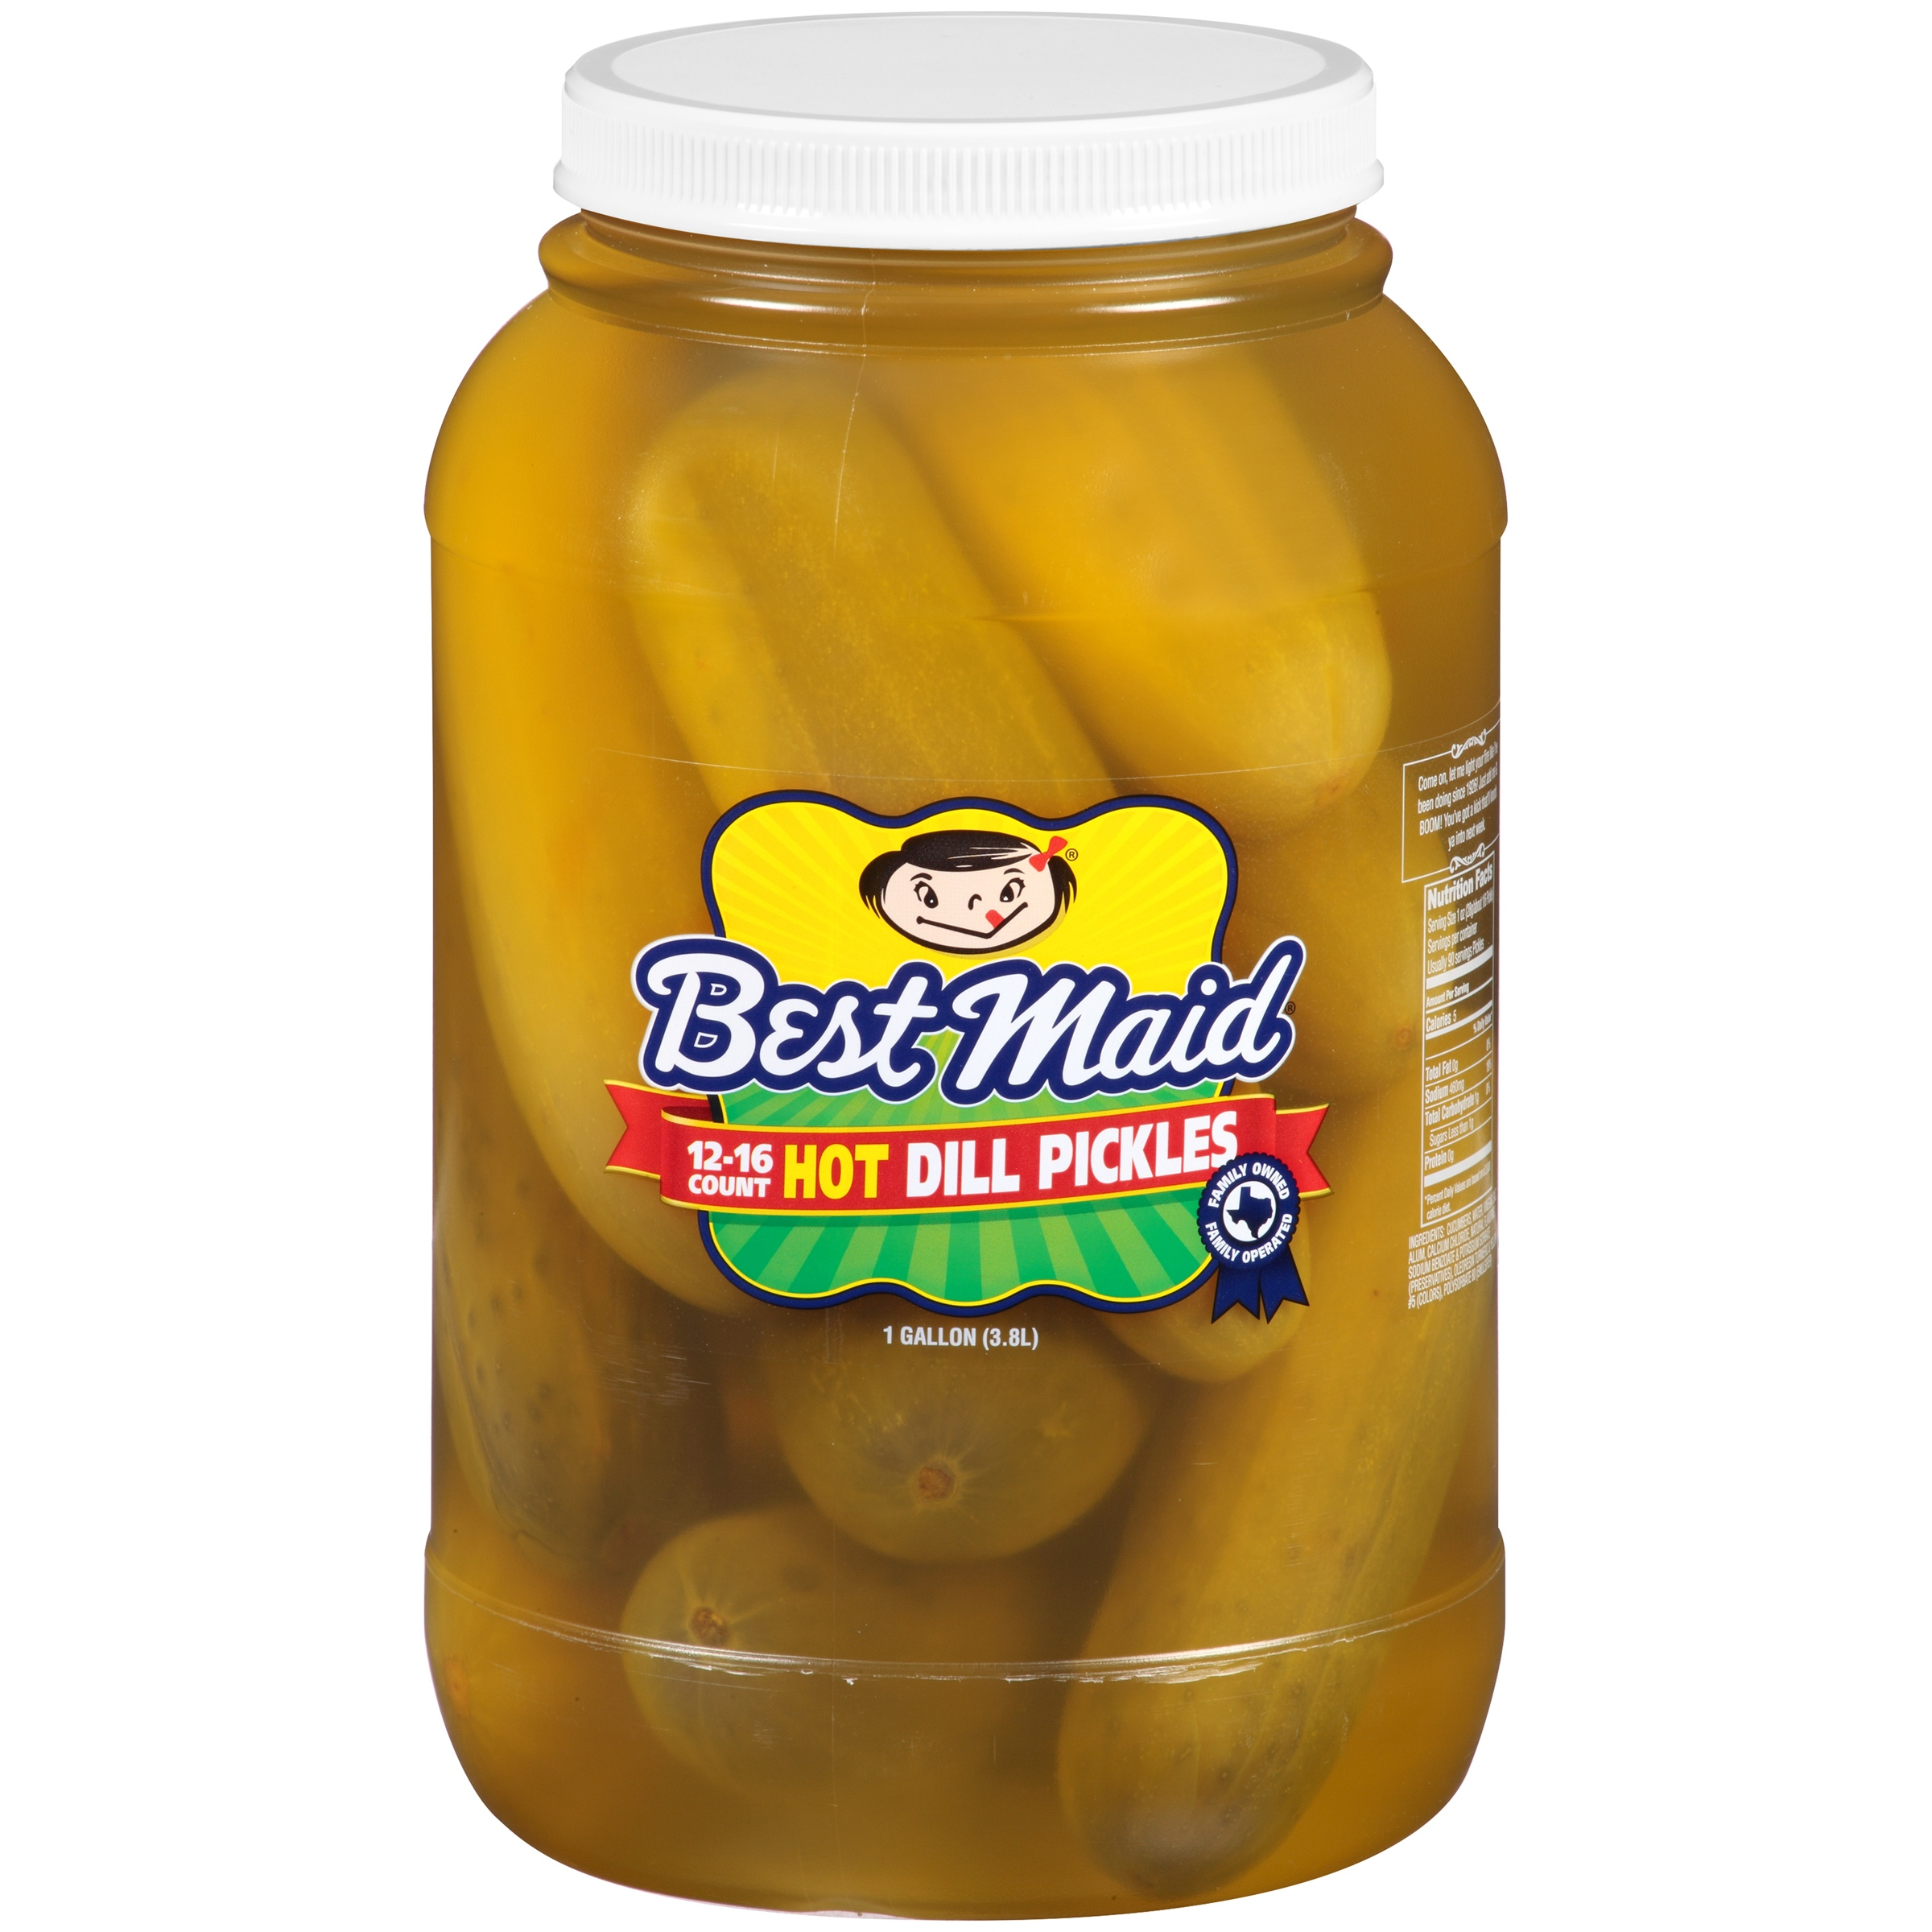 Best Maid Hot Dill Pickles 1 gal. Plastic Jar by BEST MAID PRODUCTS INC